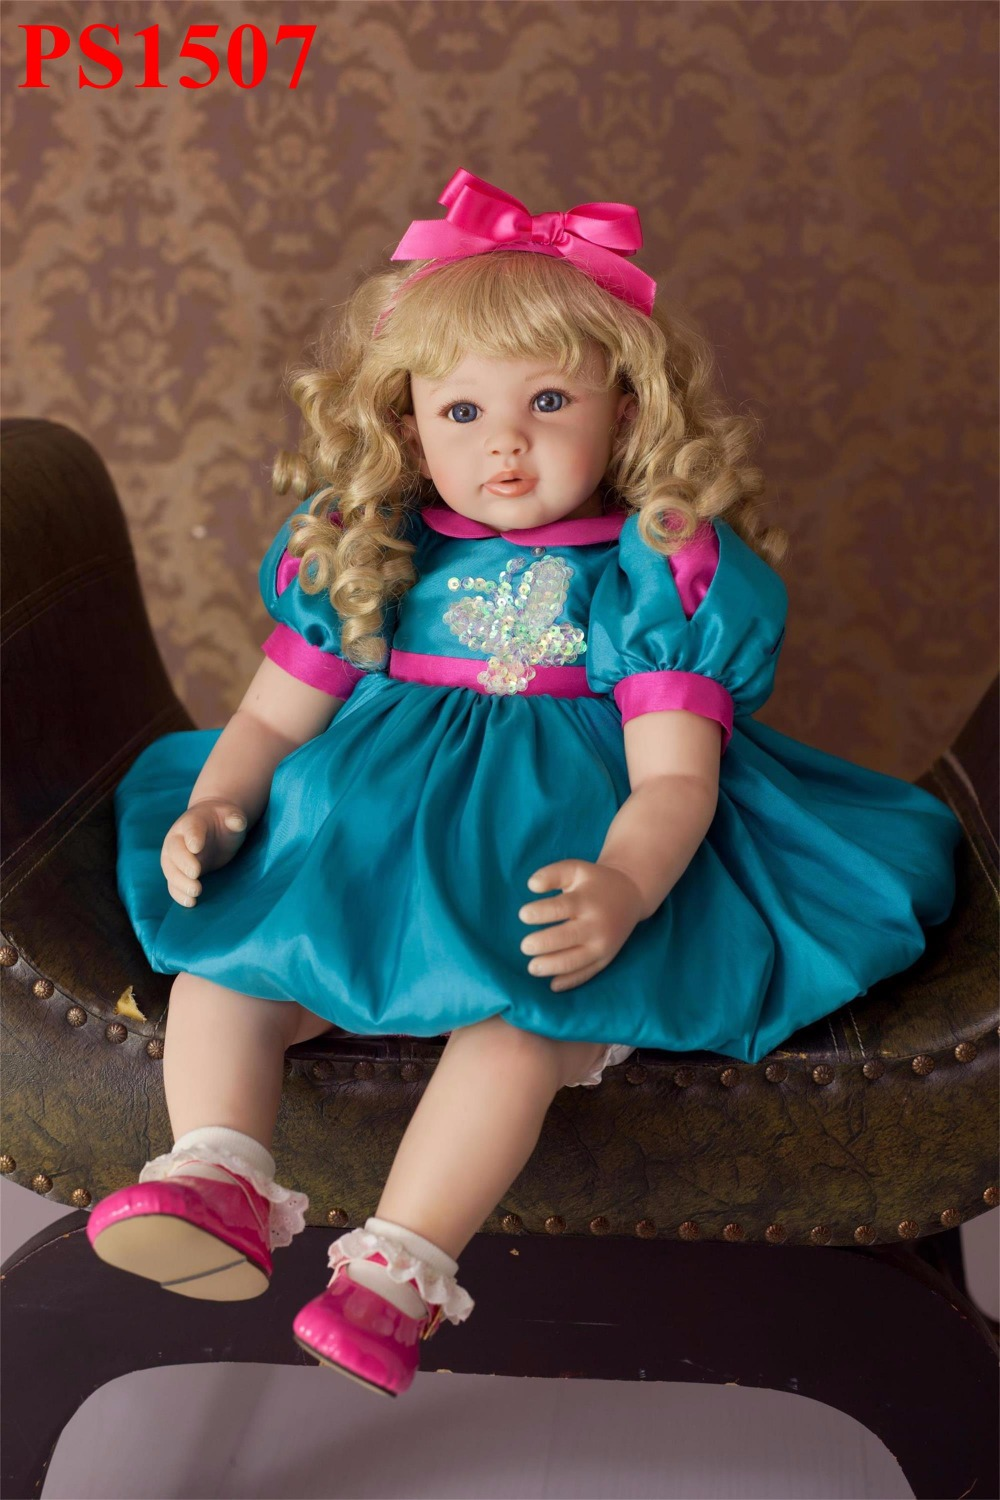 55cm silicone reborn baby princess toddler vinyl simulated dolls brinquedos play house doll christmas boutique gifts for kids high end 55cm silicone reborn doll toddler vinyl simulated dolls brinquedos christmas new year boutique gifts play house doll